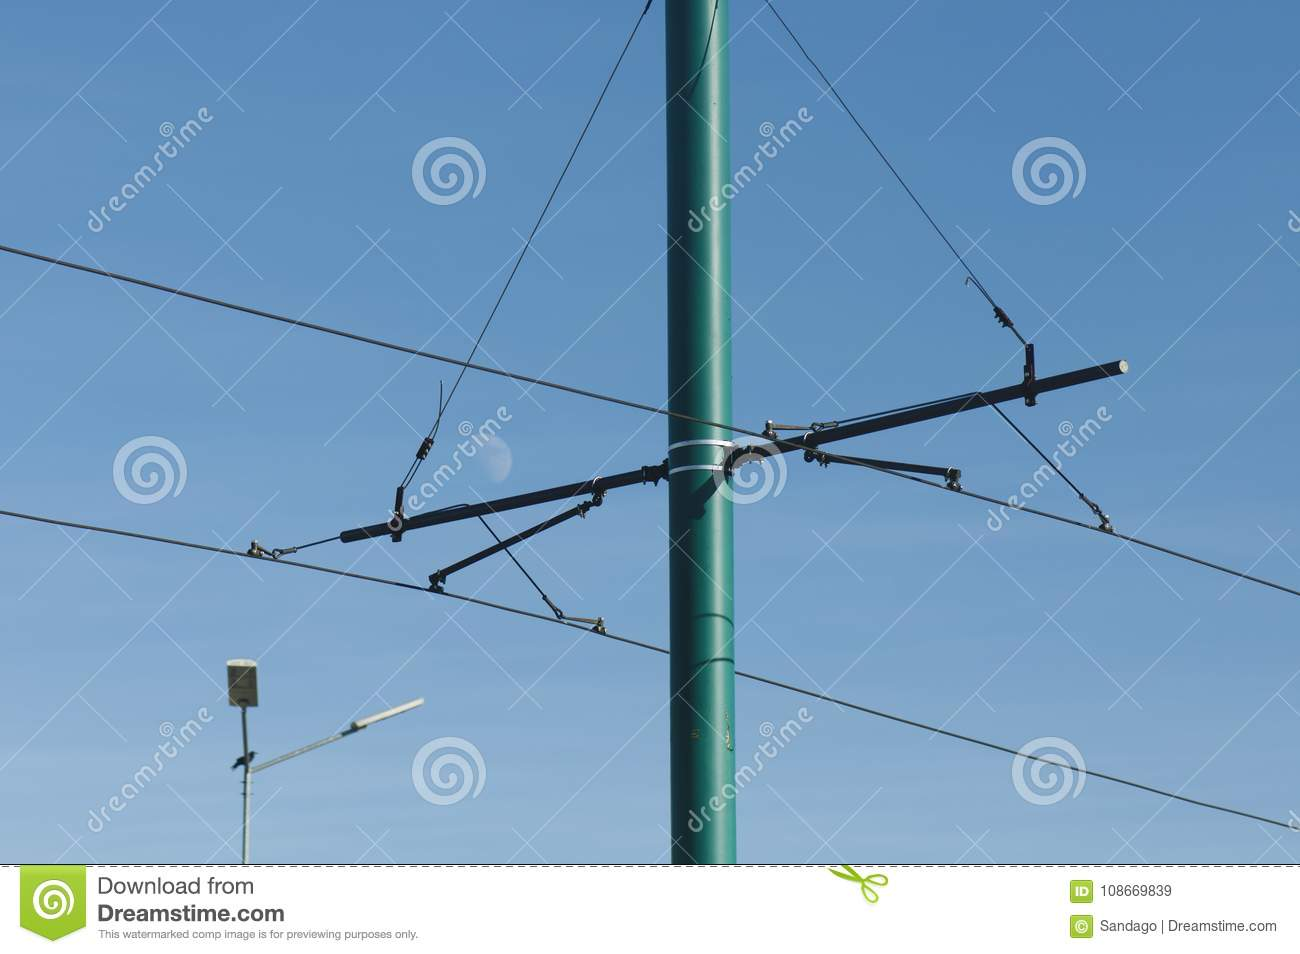 Trolley wire of a tram stock image. Image of power, light - 108669839